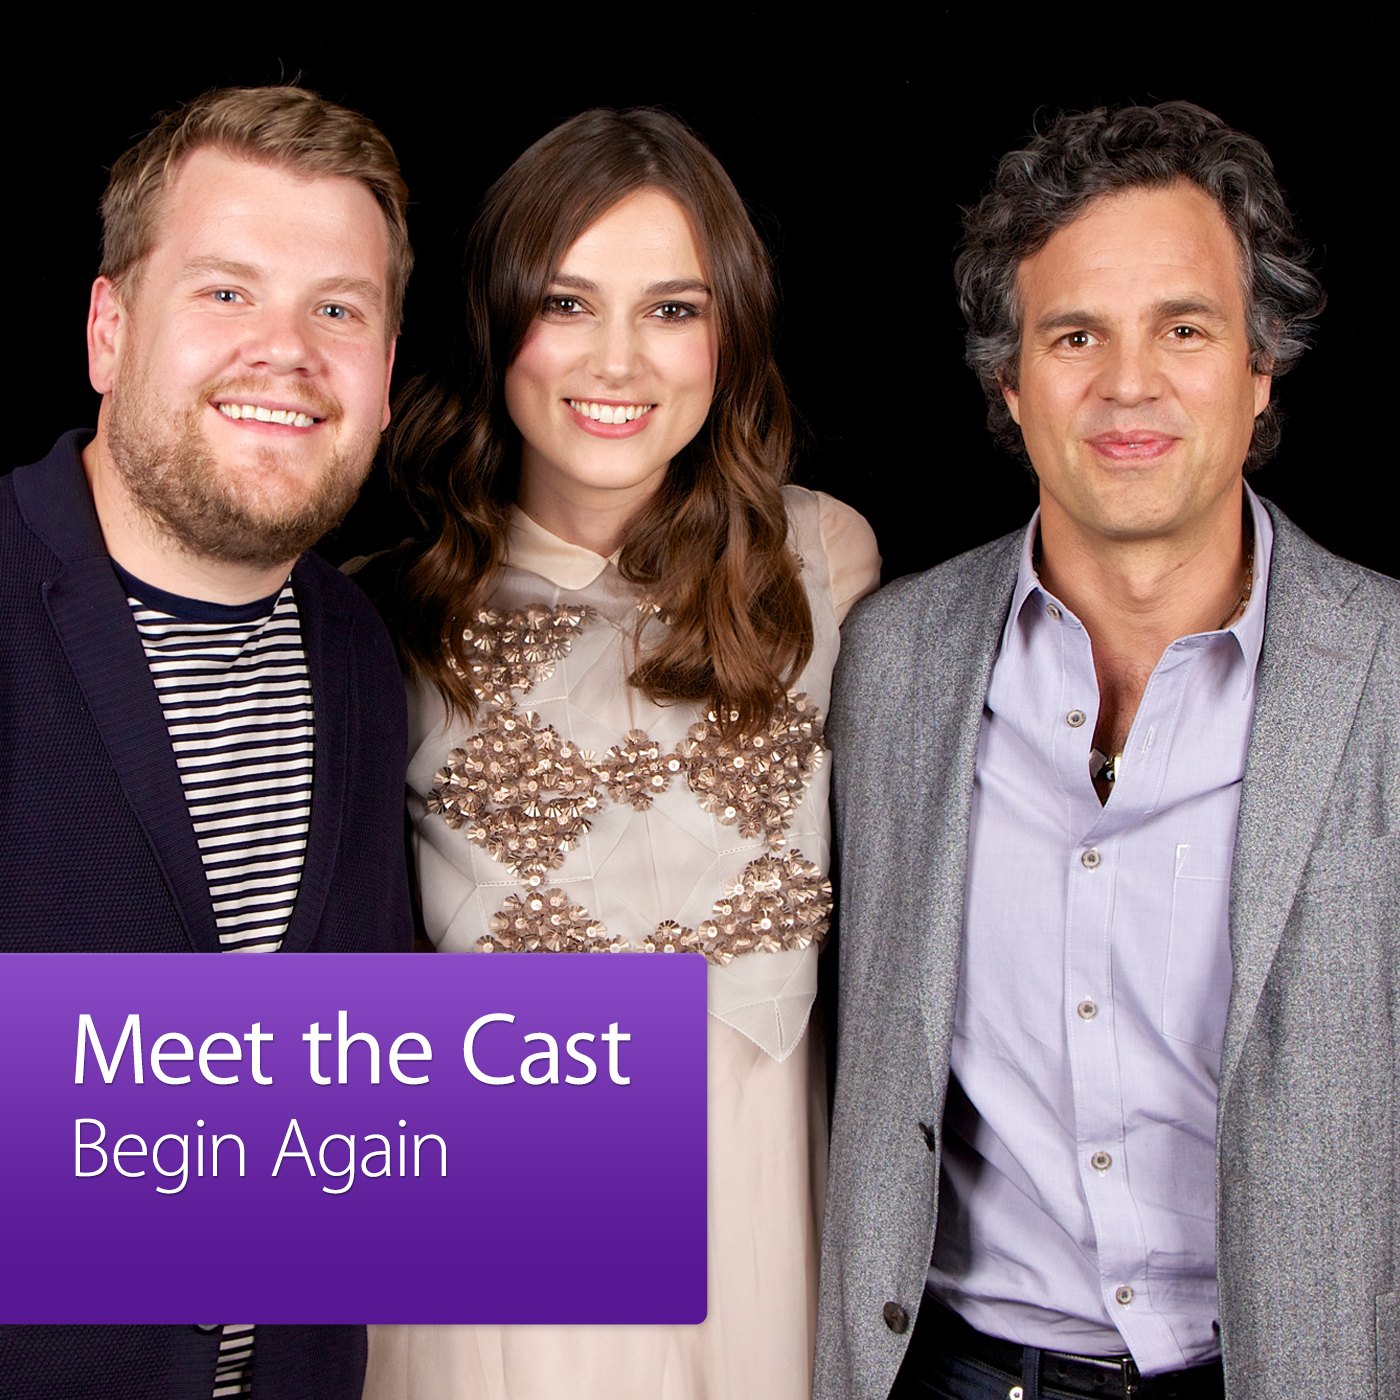 Mark Ruffalo, Keira Knightley and James Corden: Meet the Cast